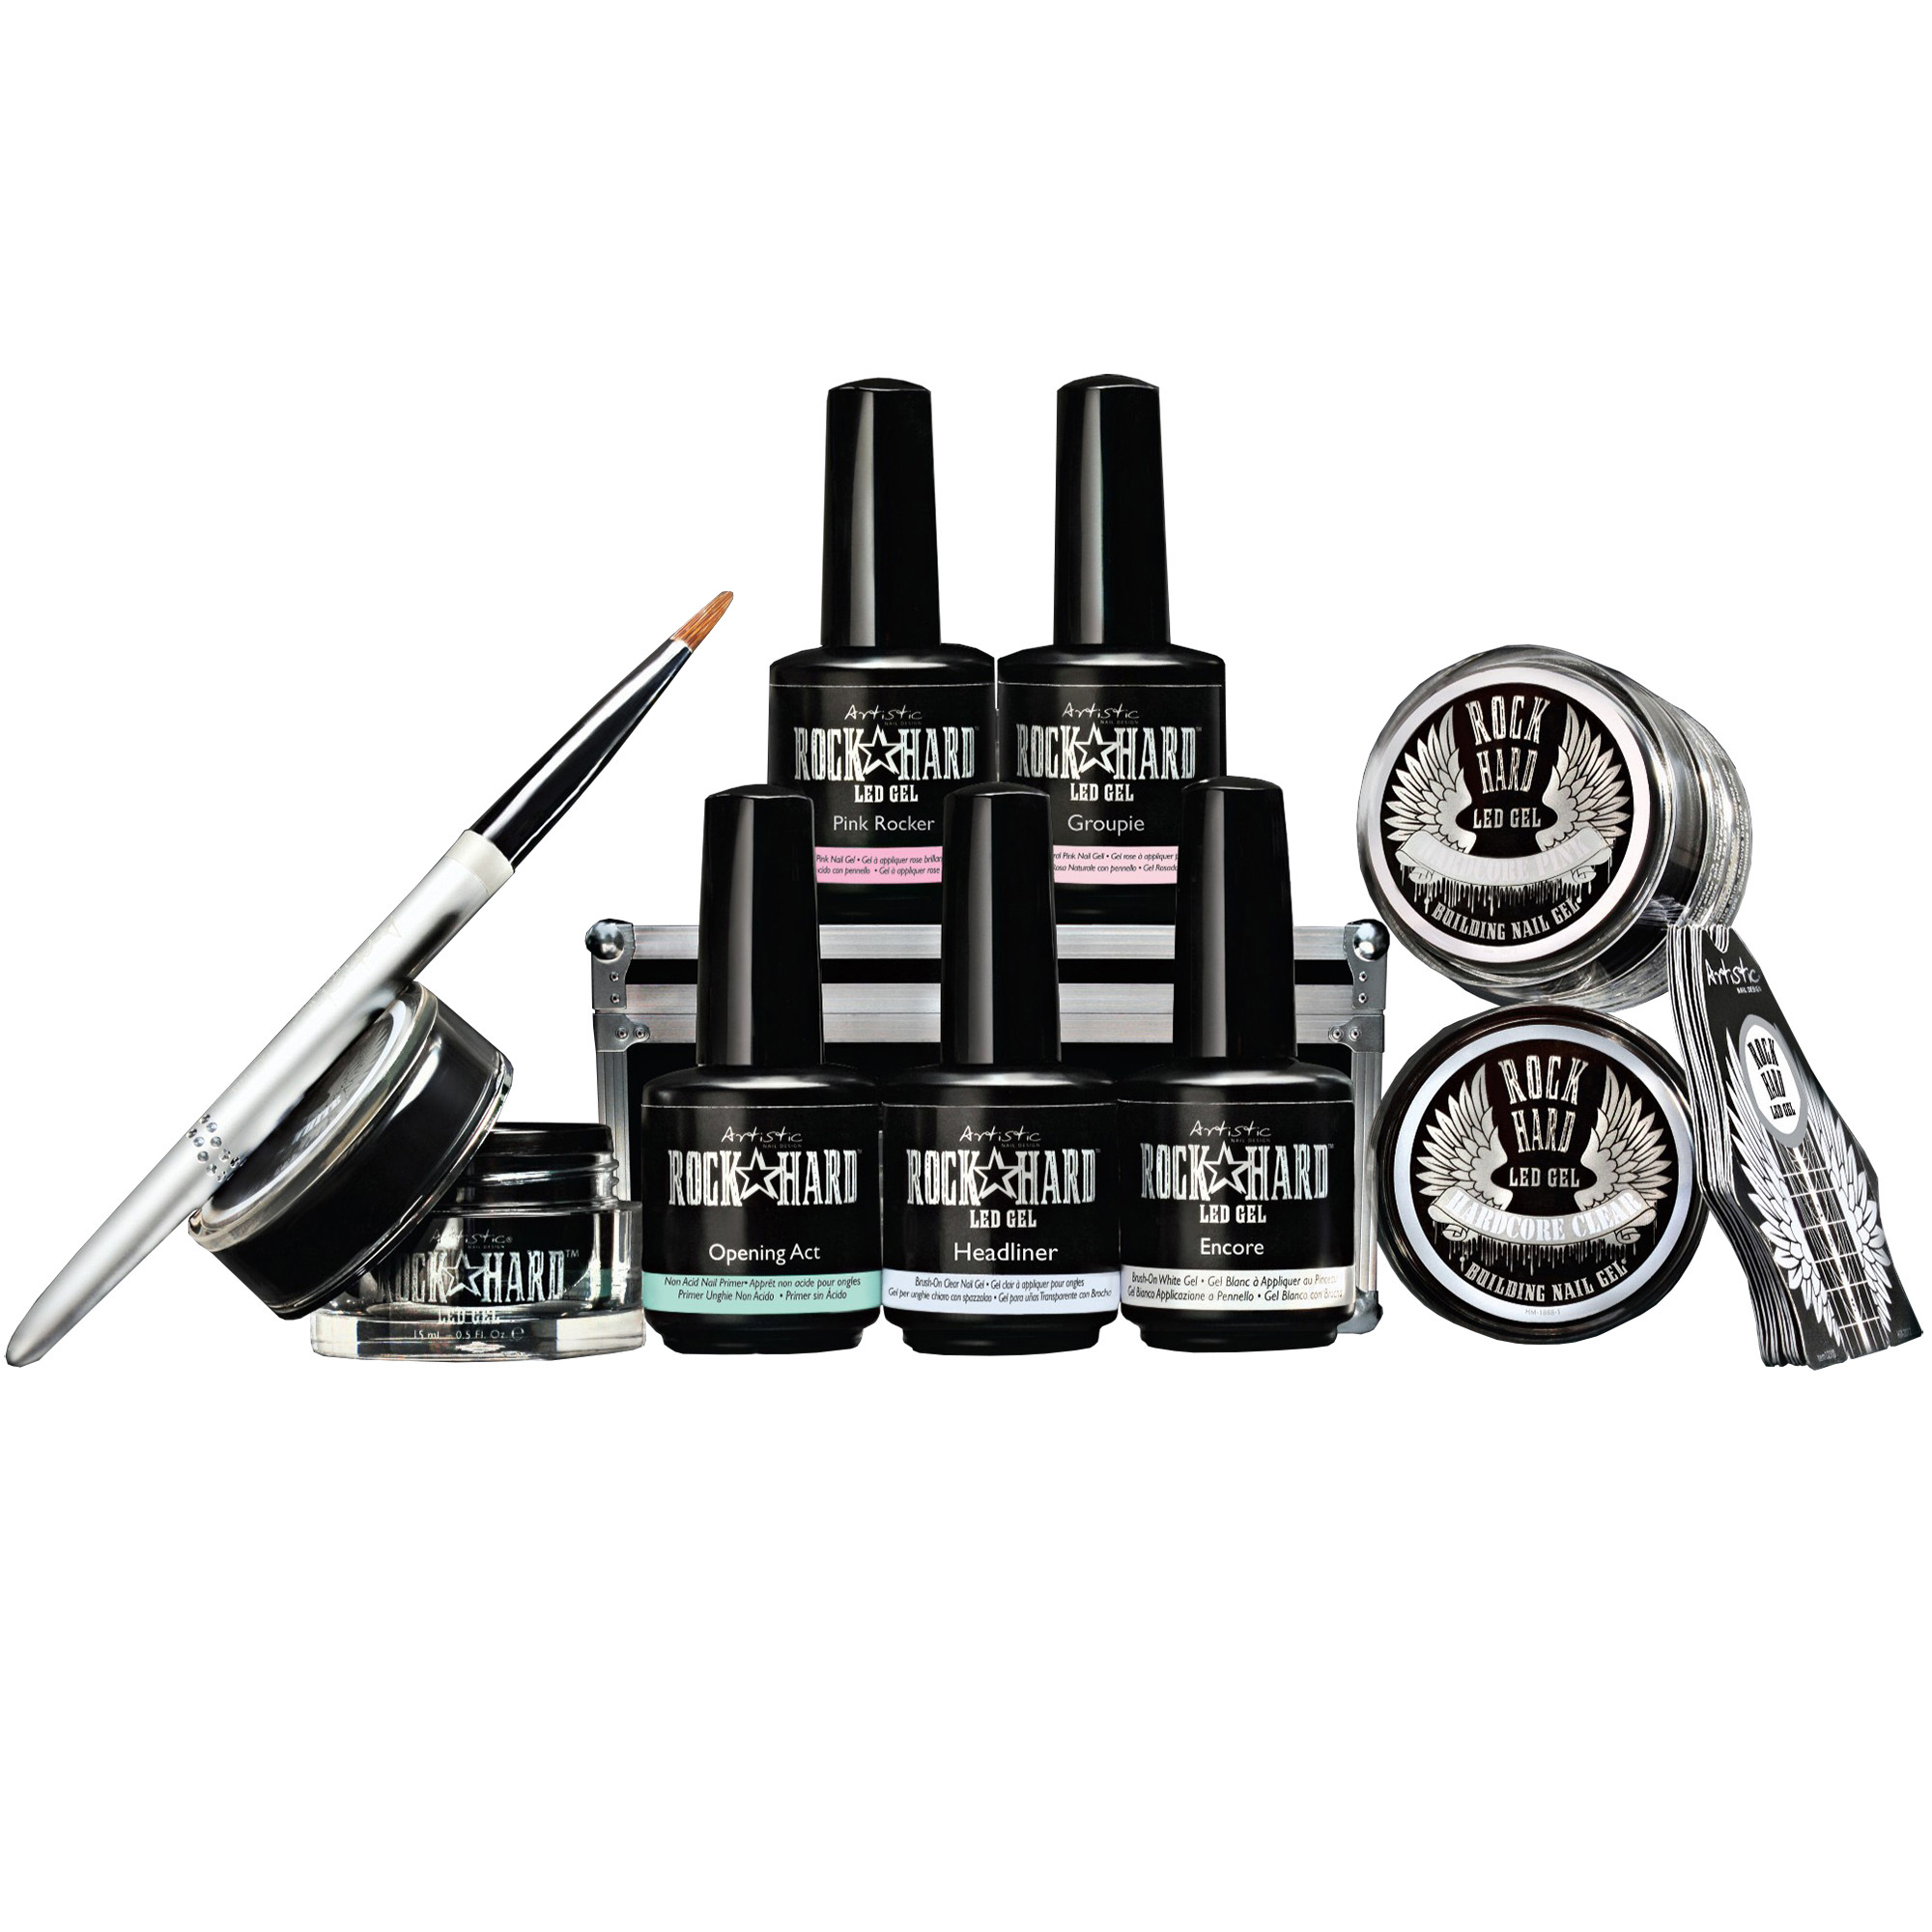 Artistic Rock Hard Gel Starter Kit with 8 Gels, Oval Brush, and Nail ...